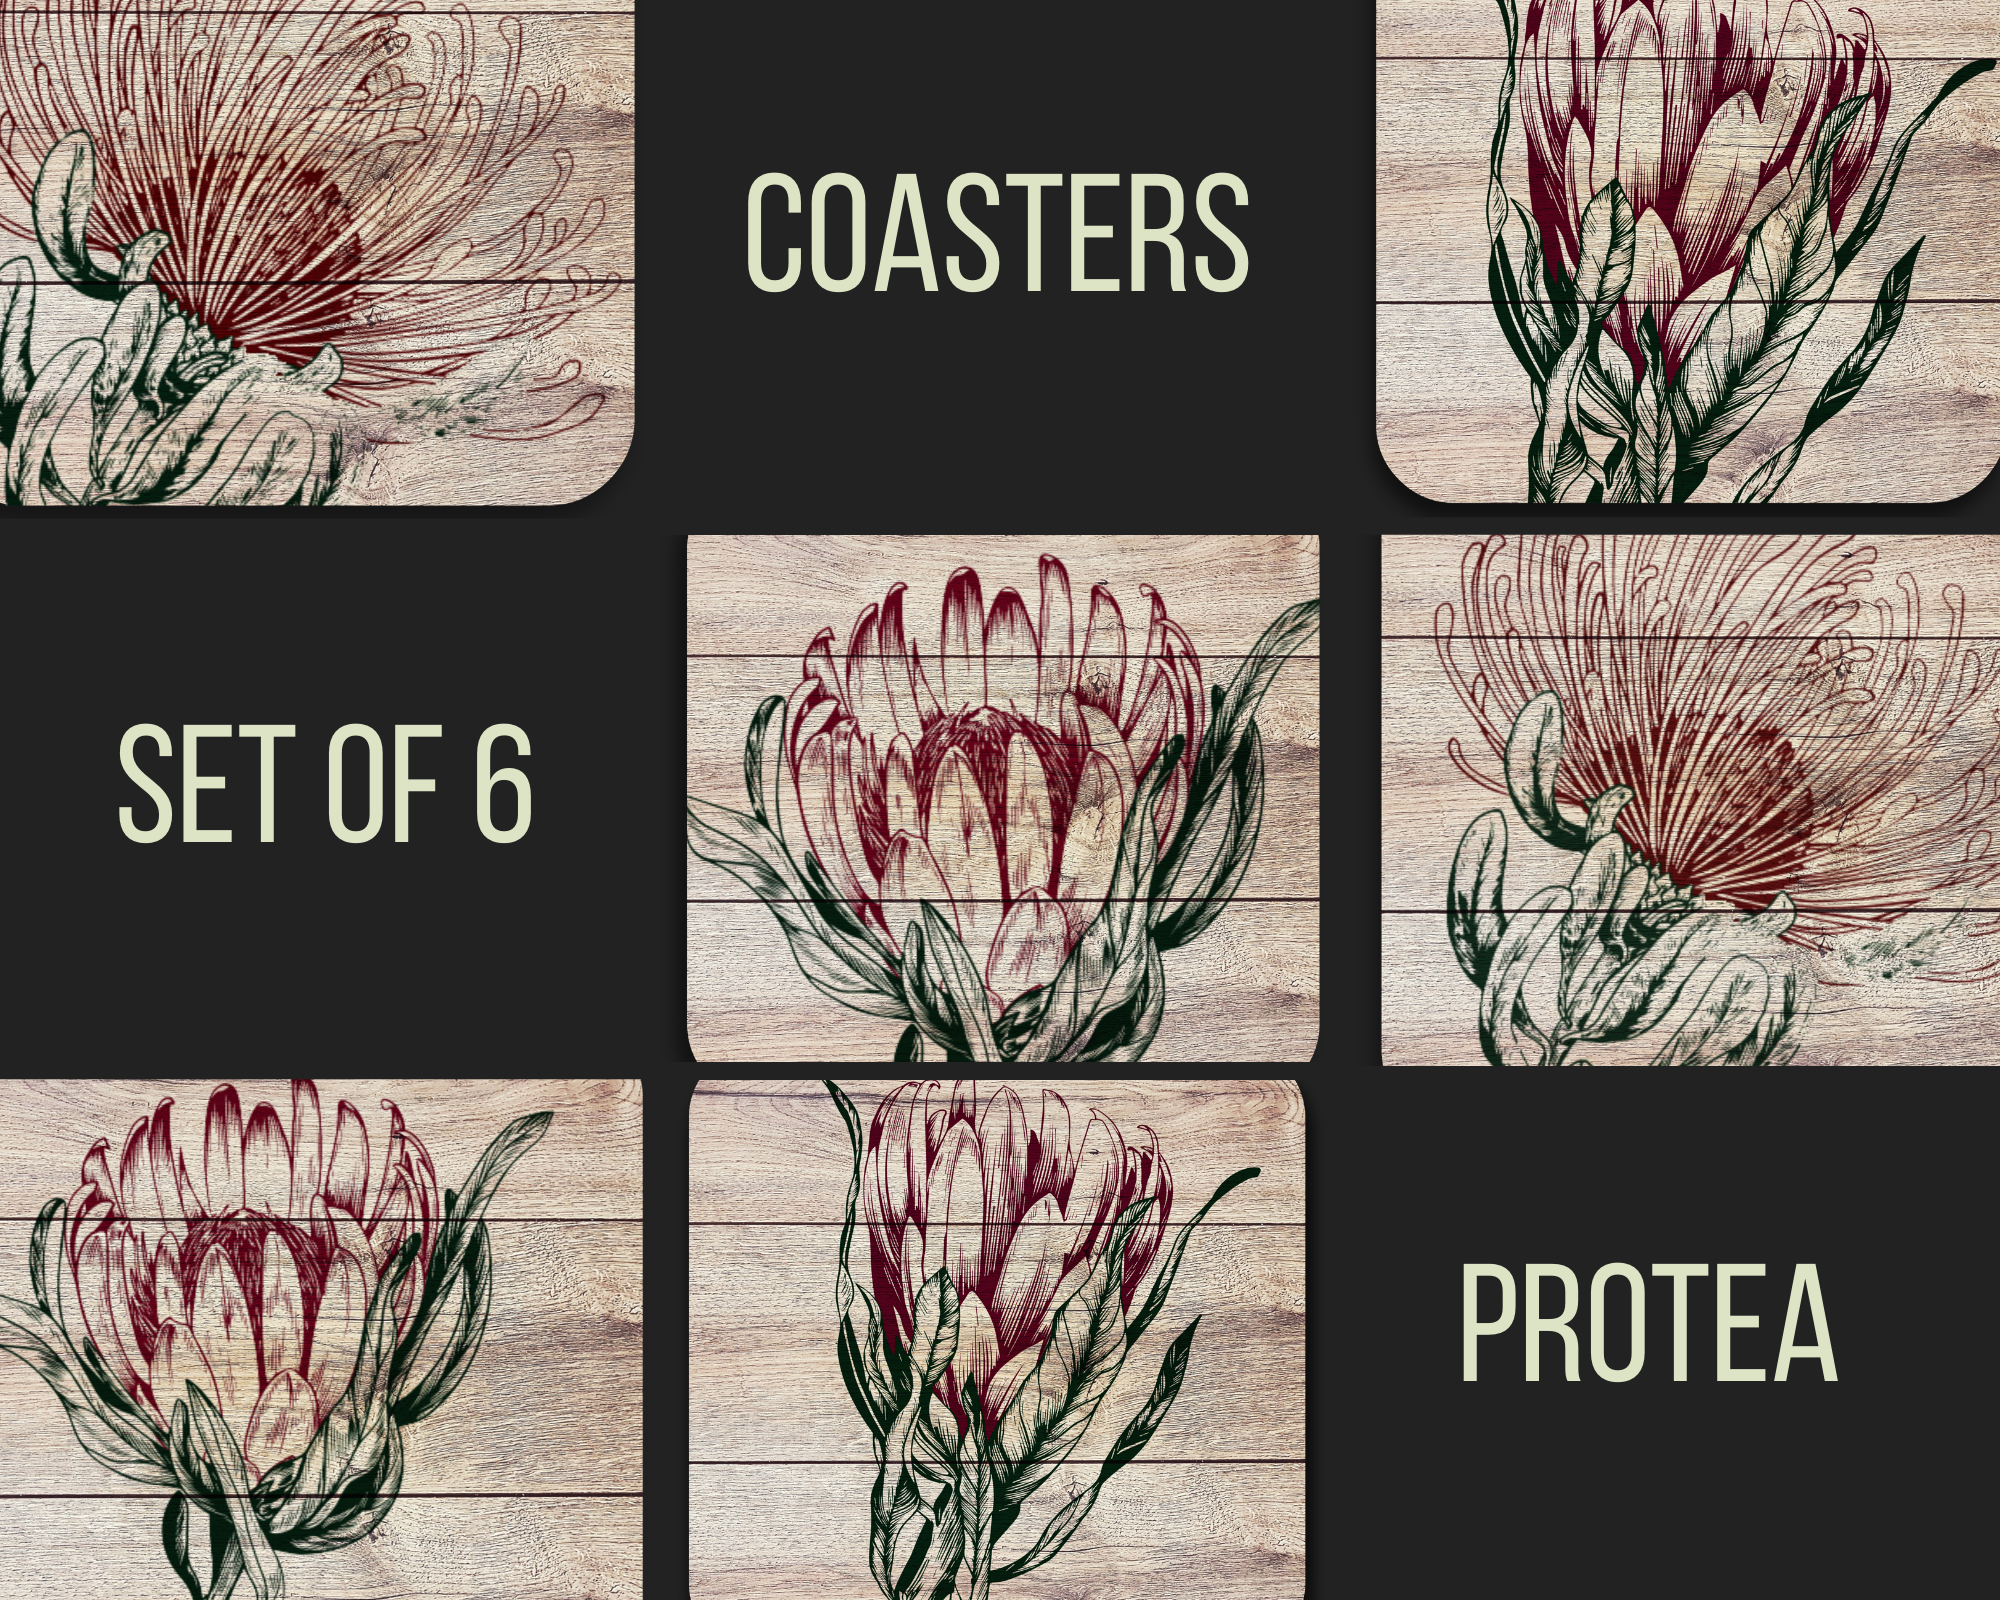 Protea Coasters (Set of 6)